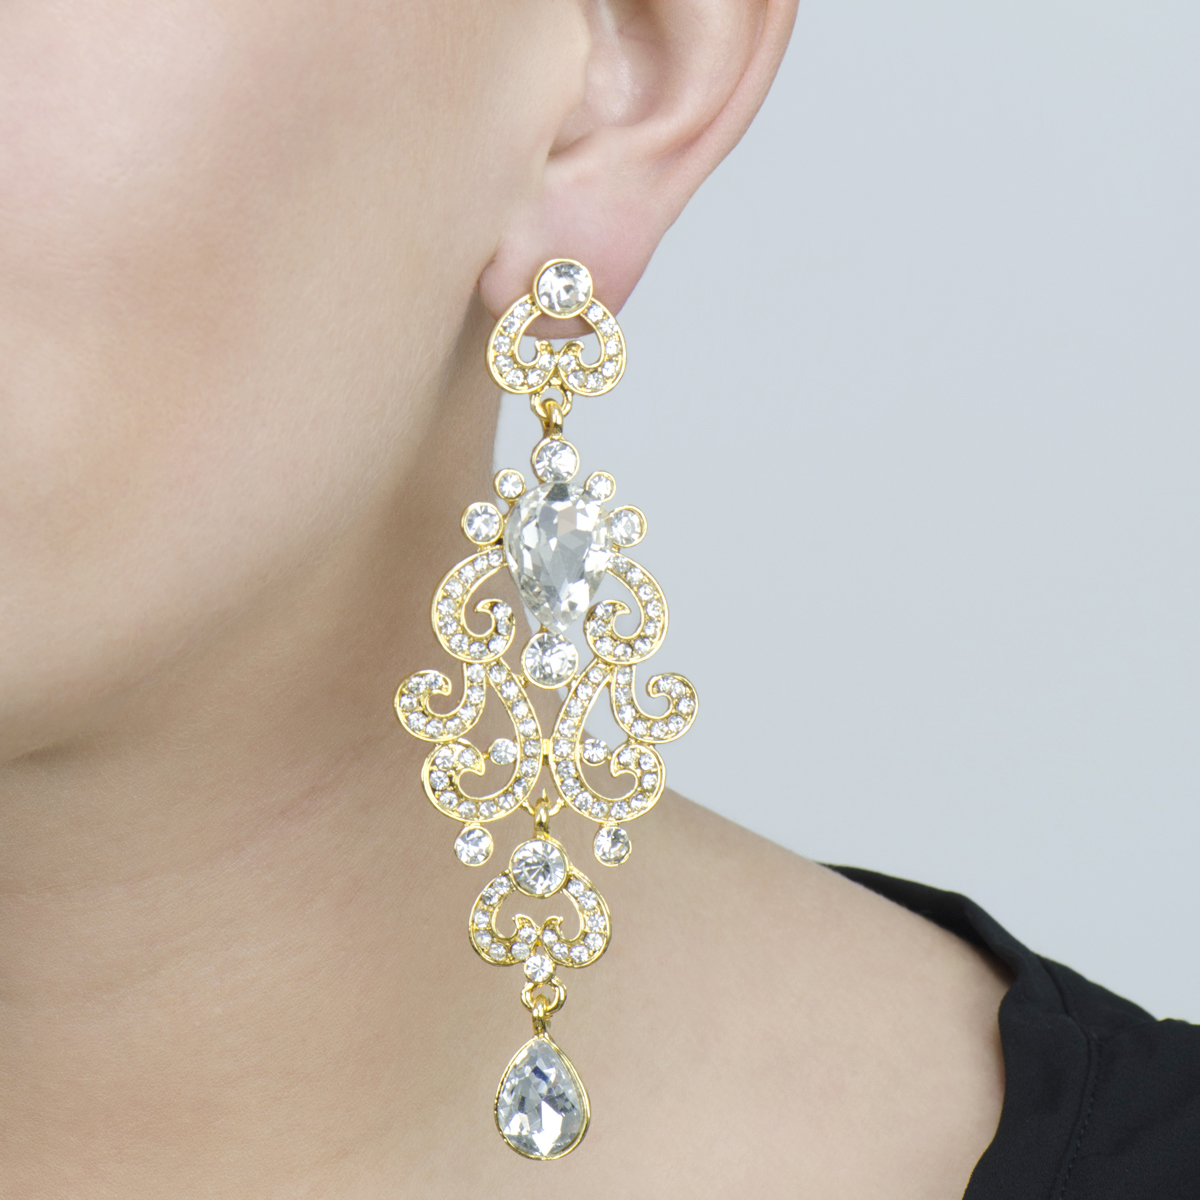 large detailmain dangles dangle phab in gold yellow main nile lrg diamond earrings blue